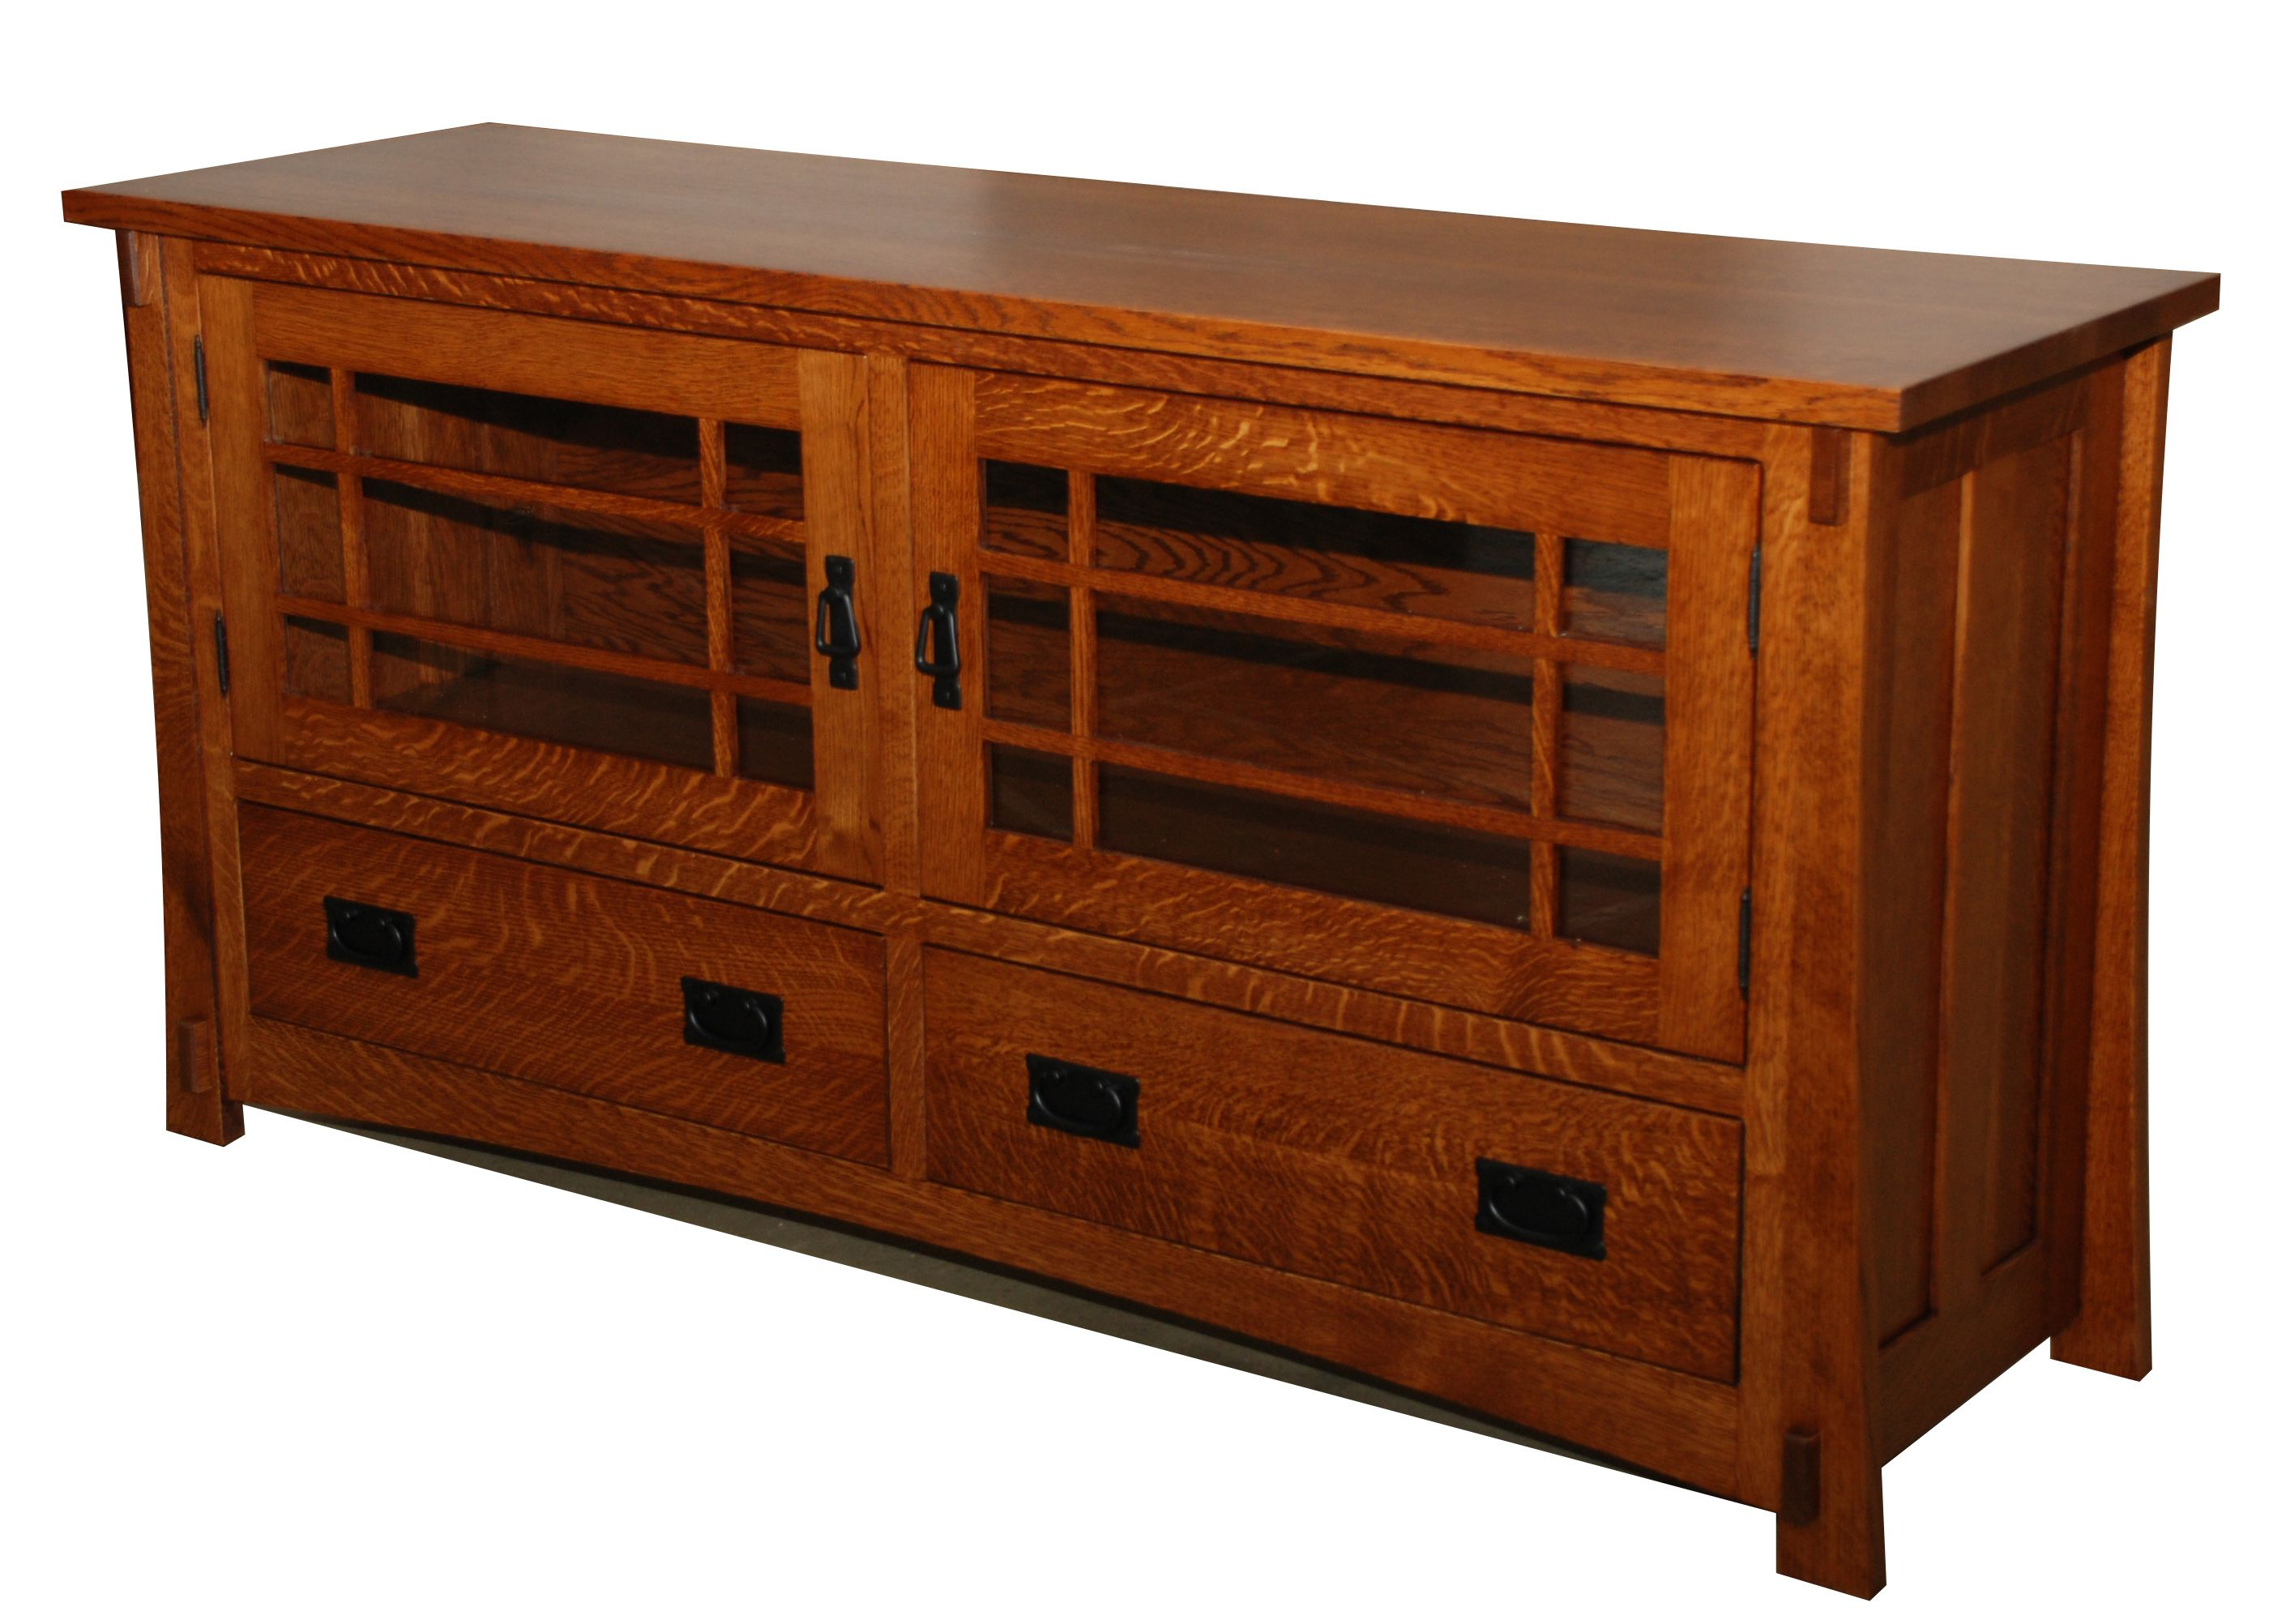 Dutch County Mission Entertainment Stand Amish Valley Products Craftsman Style Furniture Craftsman Furniture Mission Style Furniture